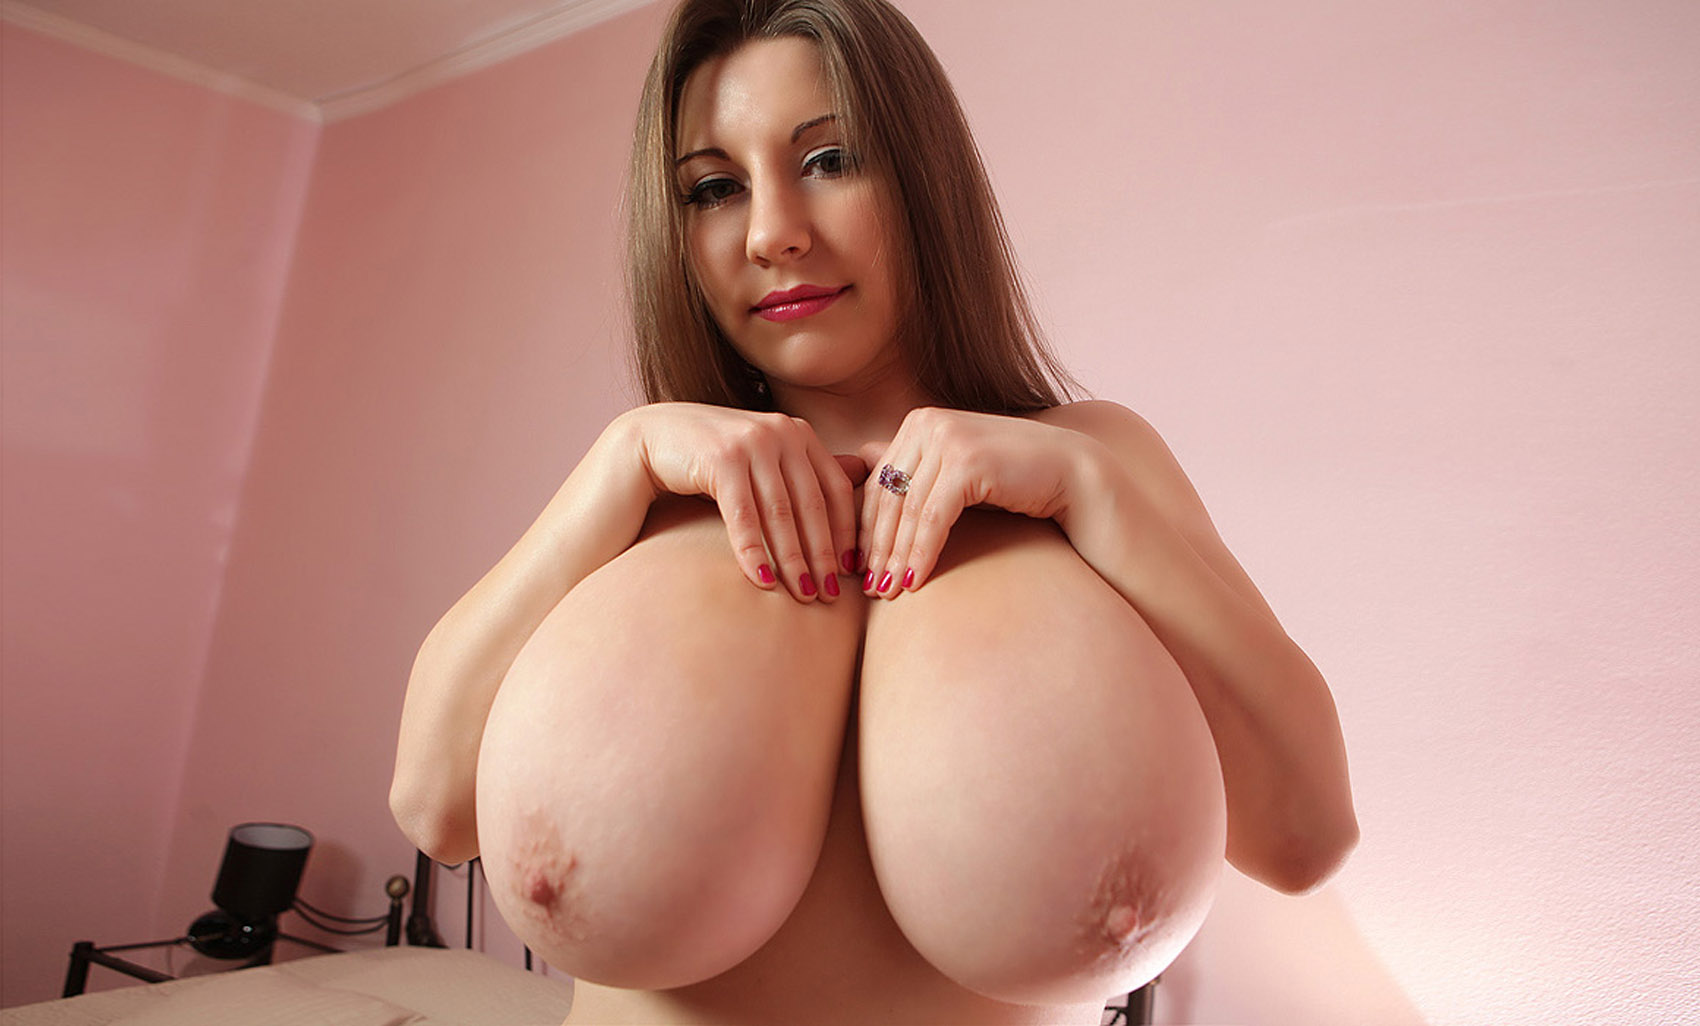 Big boobs nude youngleaf pictures fucking galleries